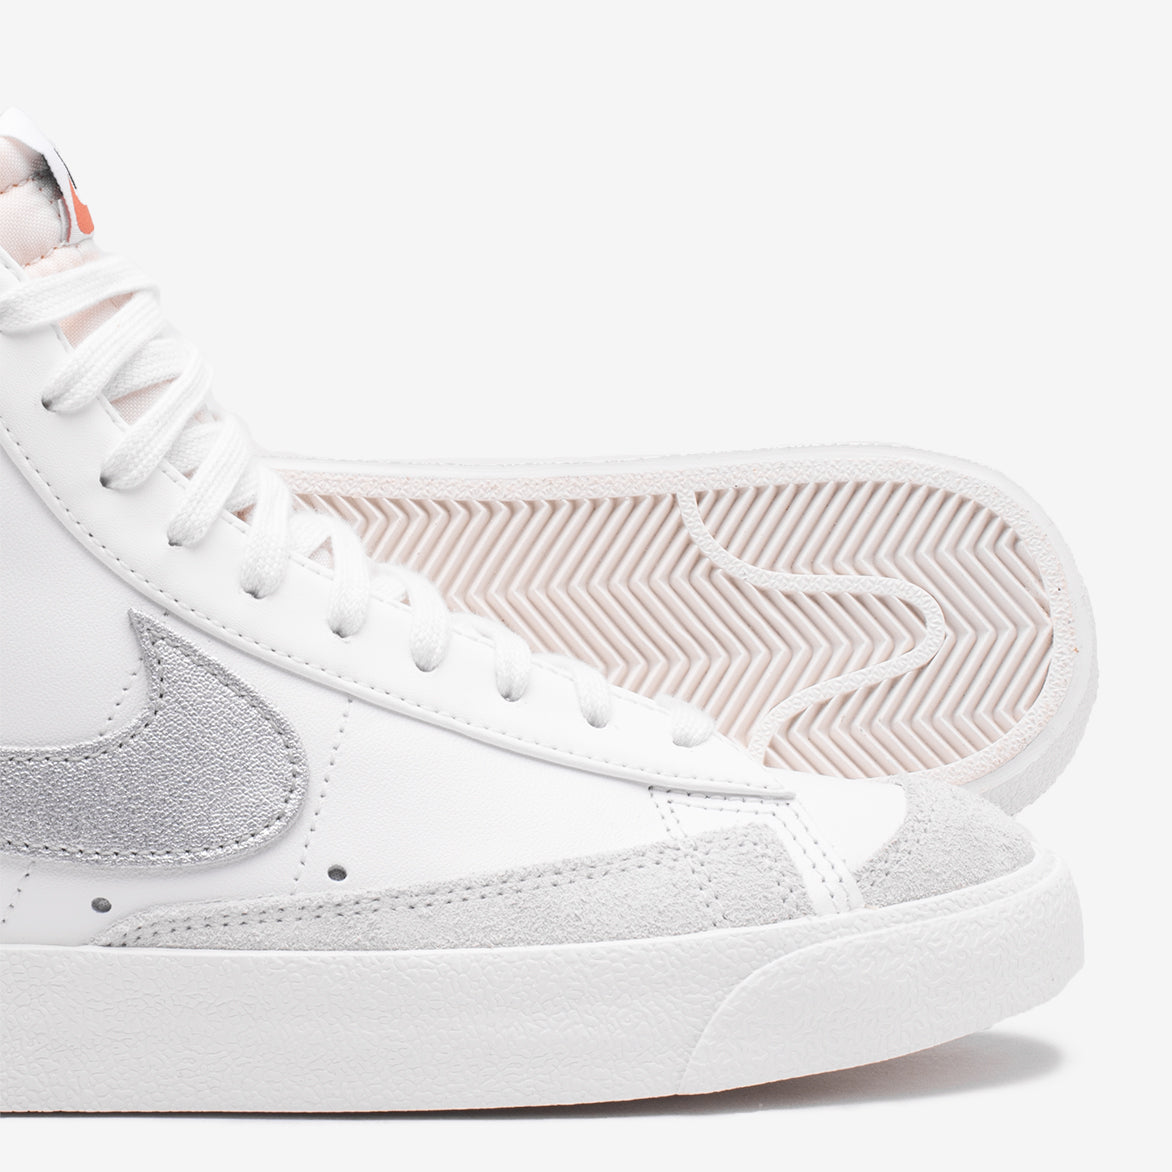 WMNS BLAZER MID`77 - SUMMIT WHITE / METALLIC SILVER